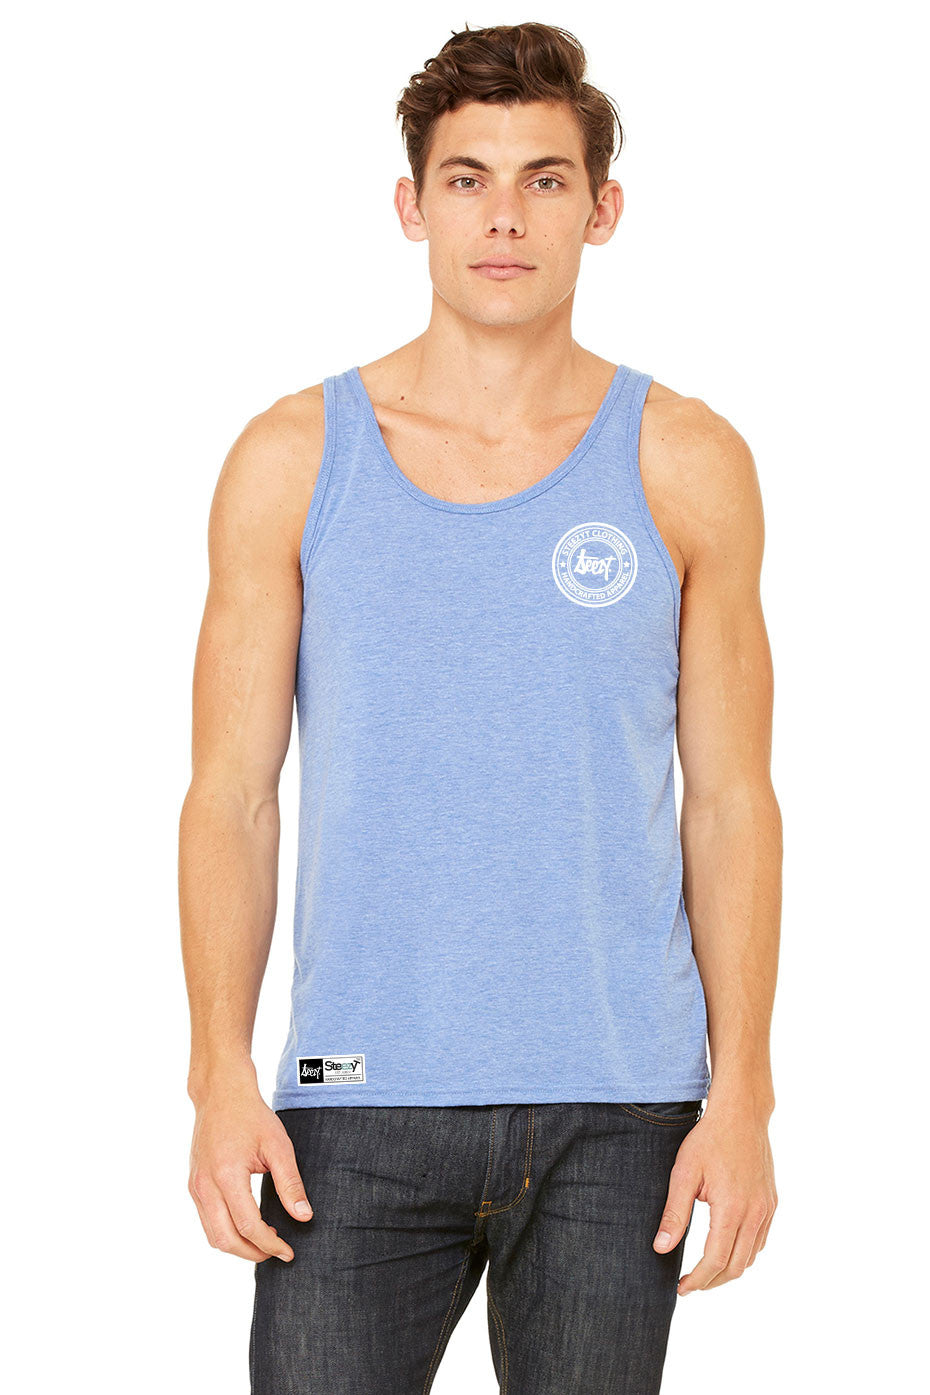 SteezyT Tri-Blend Blue Jersey Tank , Tanks - SteezyT, SteezyT™ Clothing Co  - 2